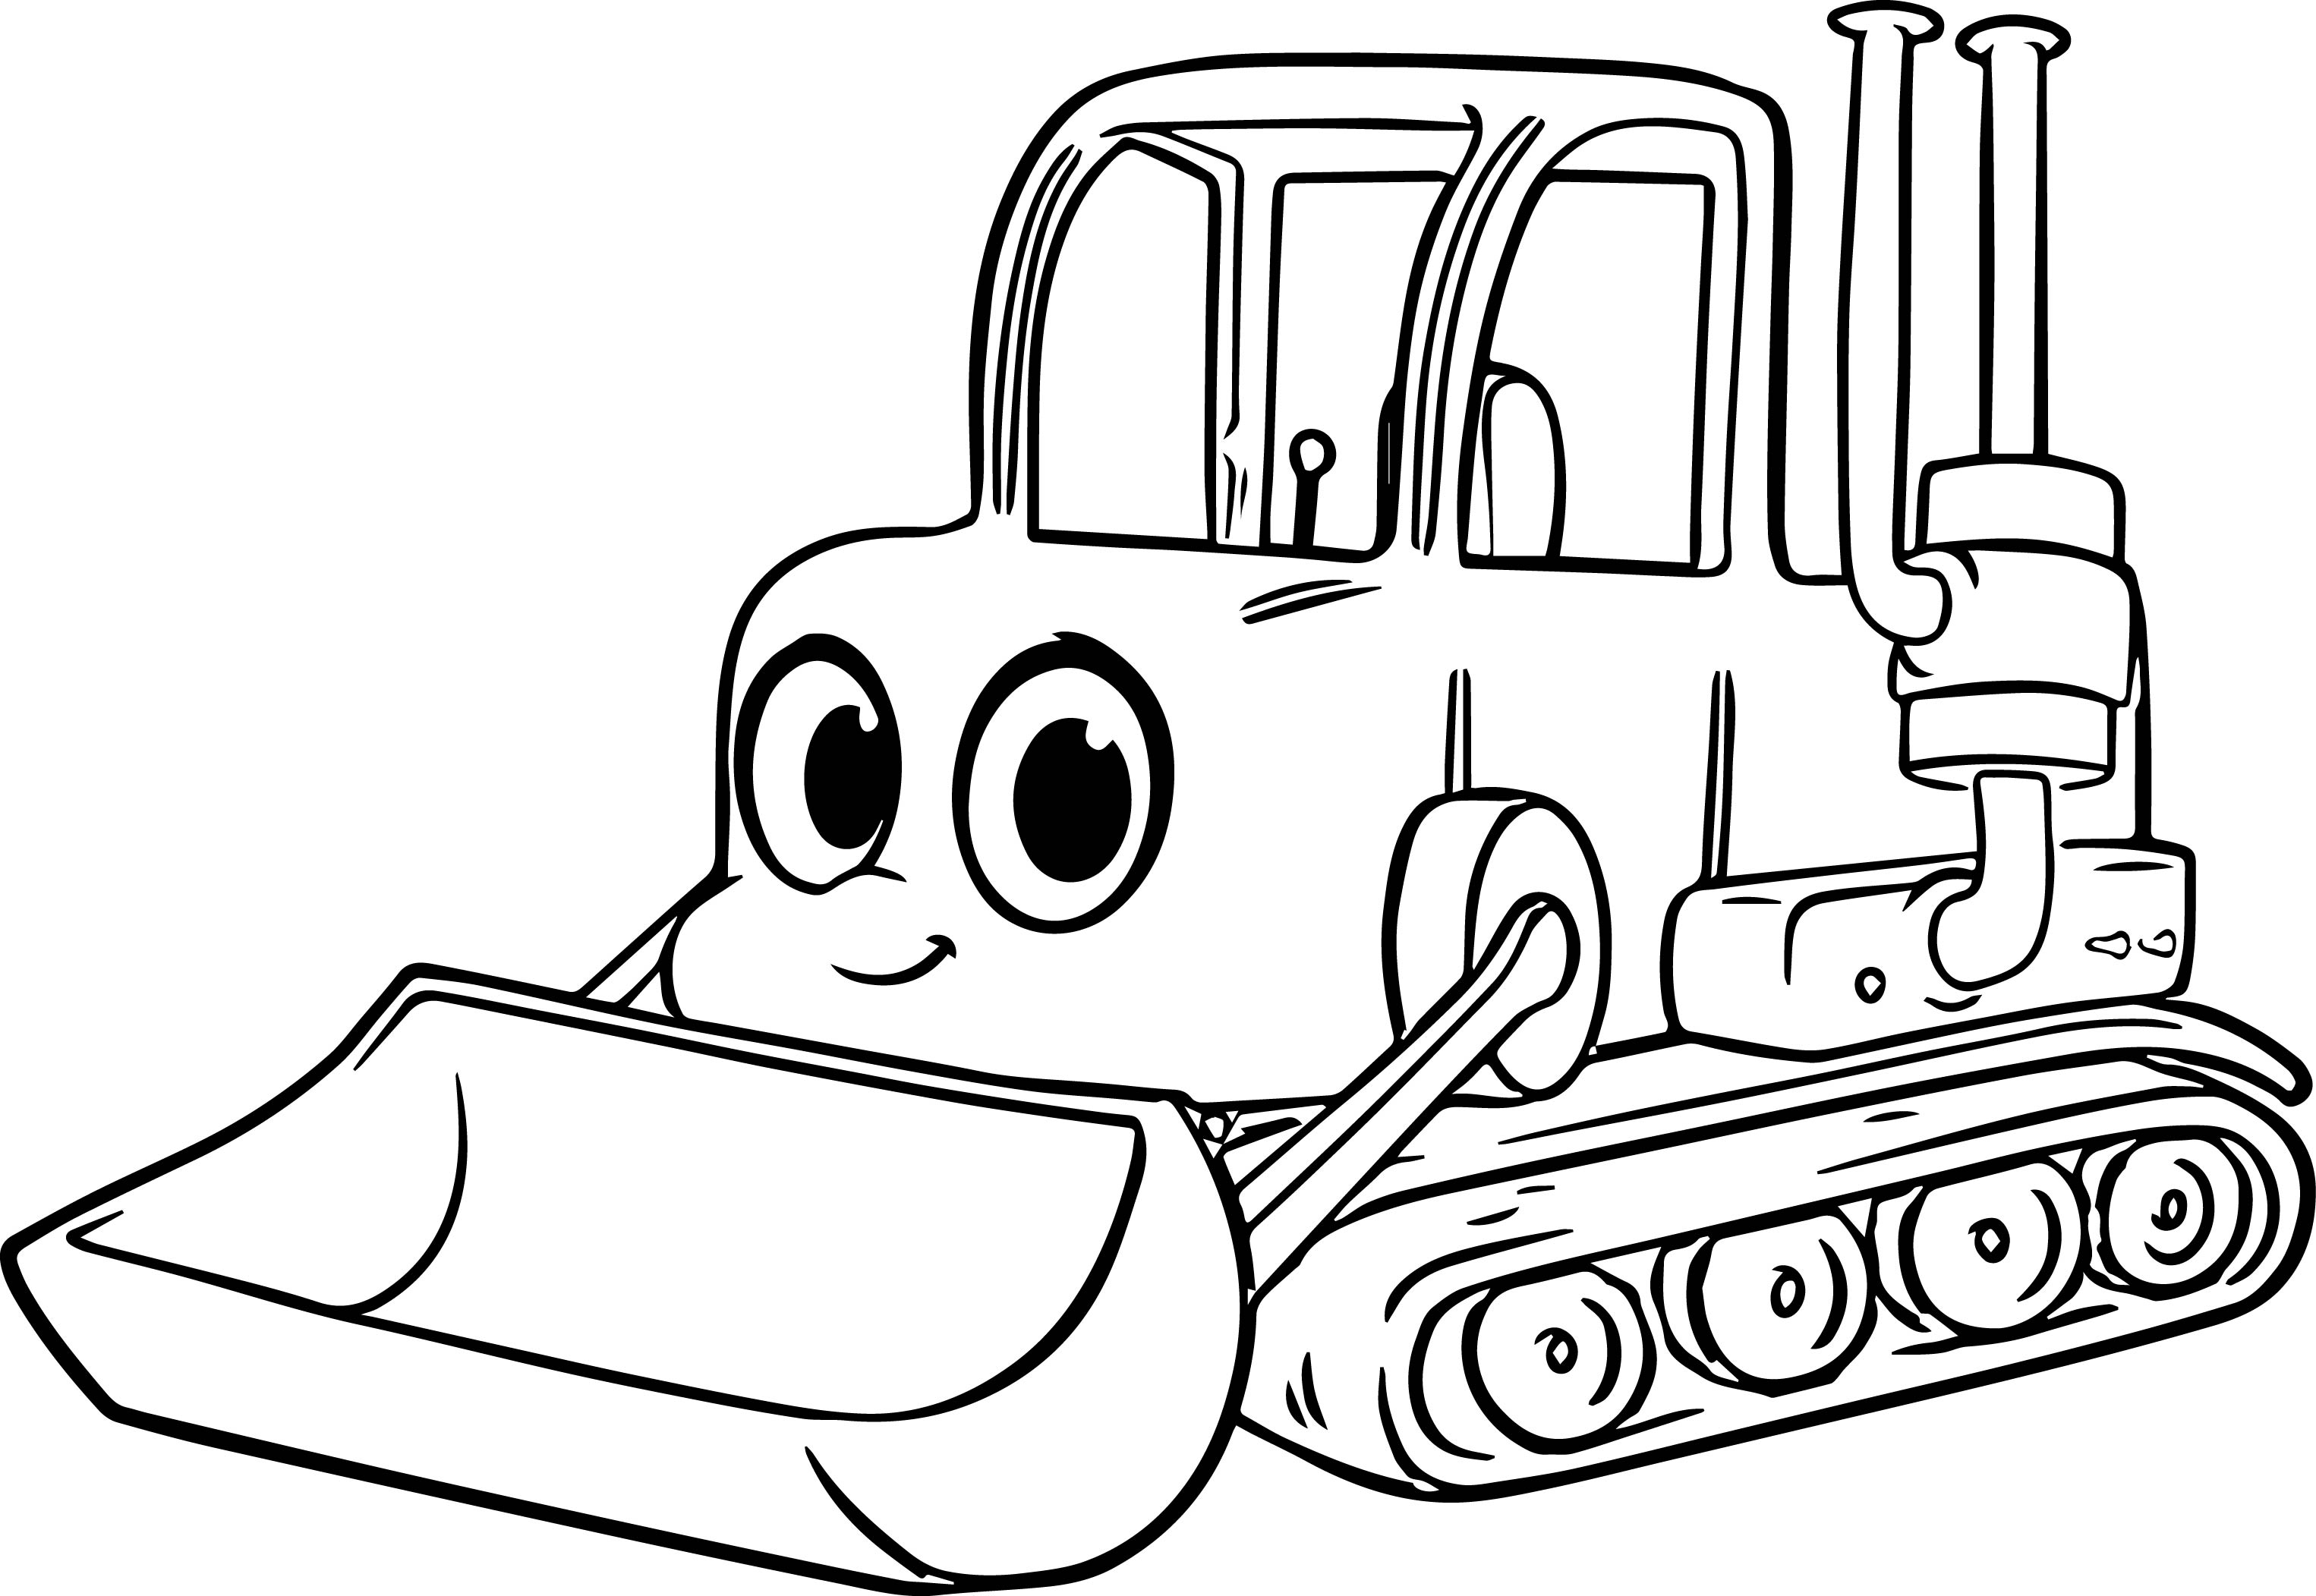 Bulldozer Coloring Page Az Pages Sketch Coloring Page Bulldozer Coloring Pages